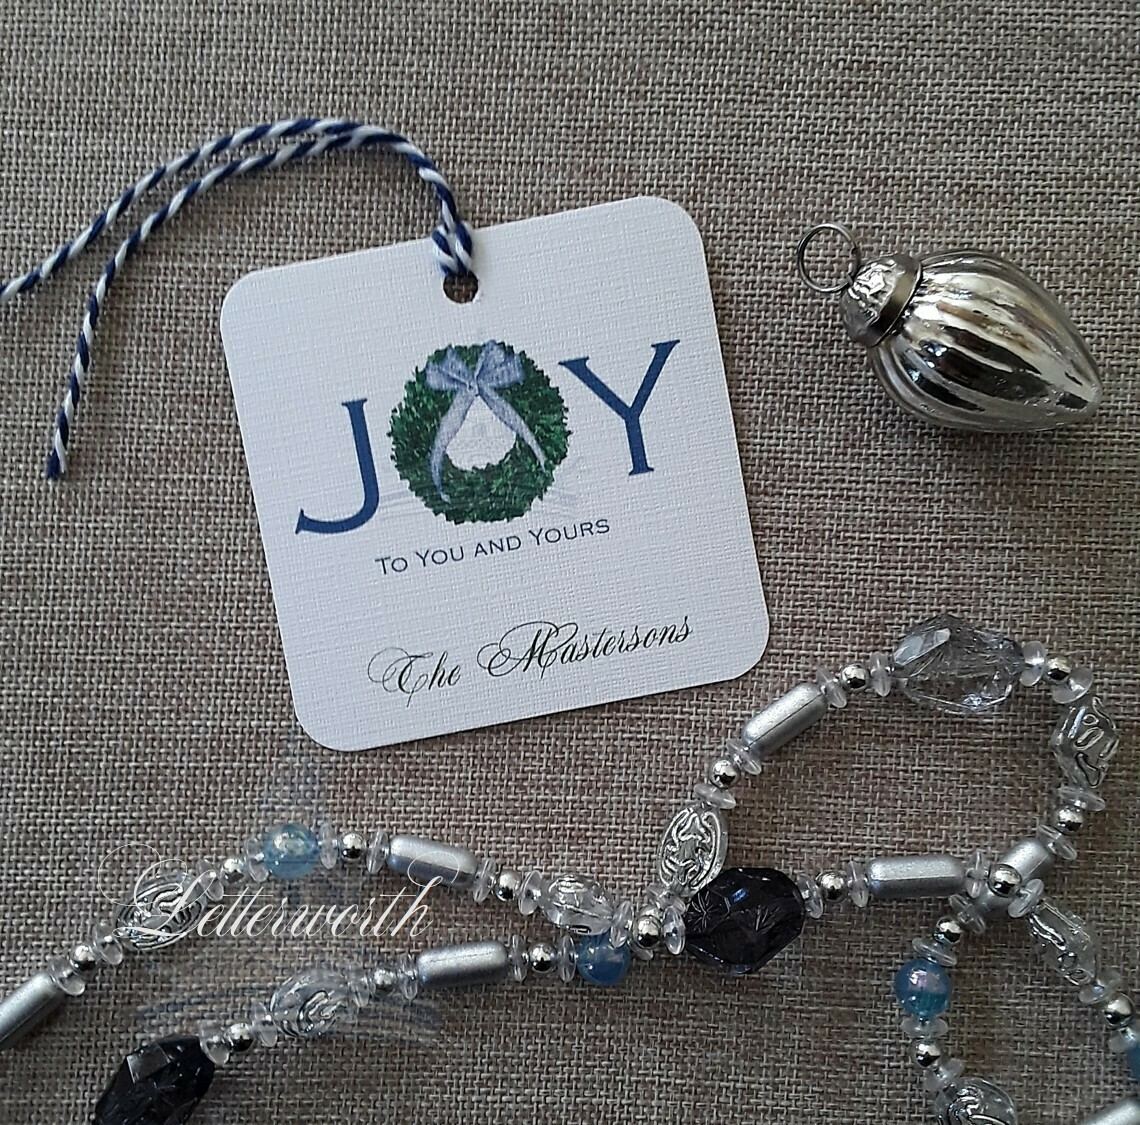 Boxwood Joy Personalized Blue Holiday Gift Tags by Letterworth (Set of 12)